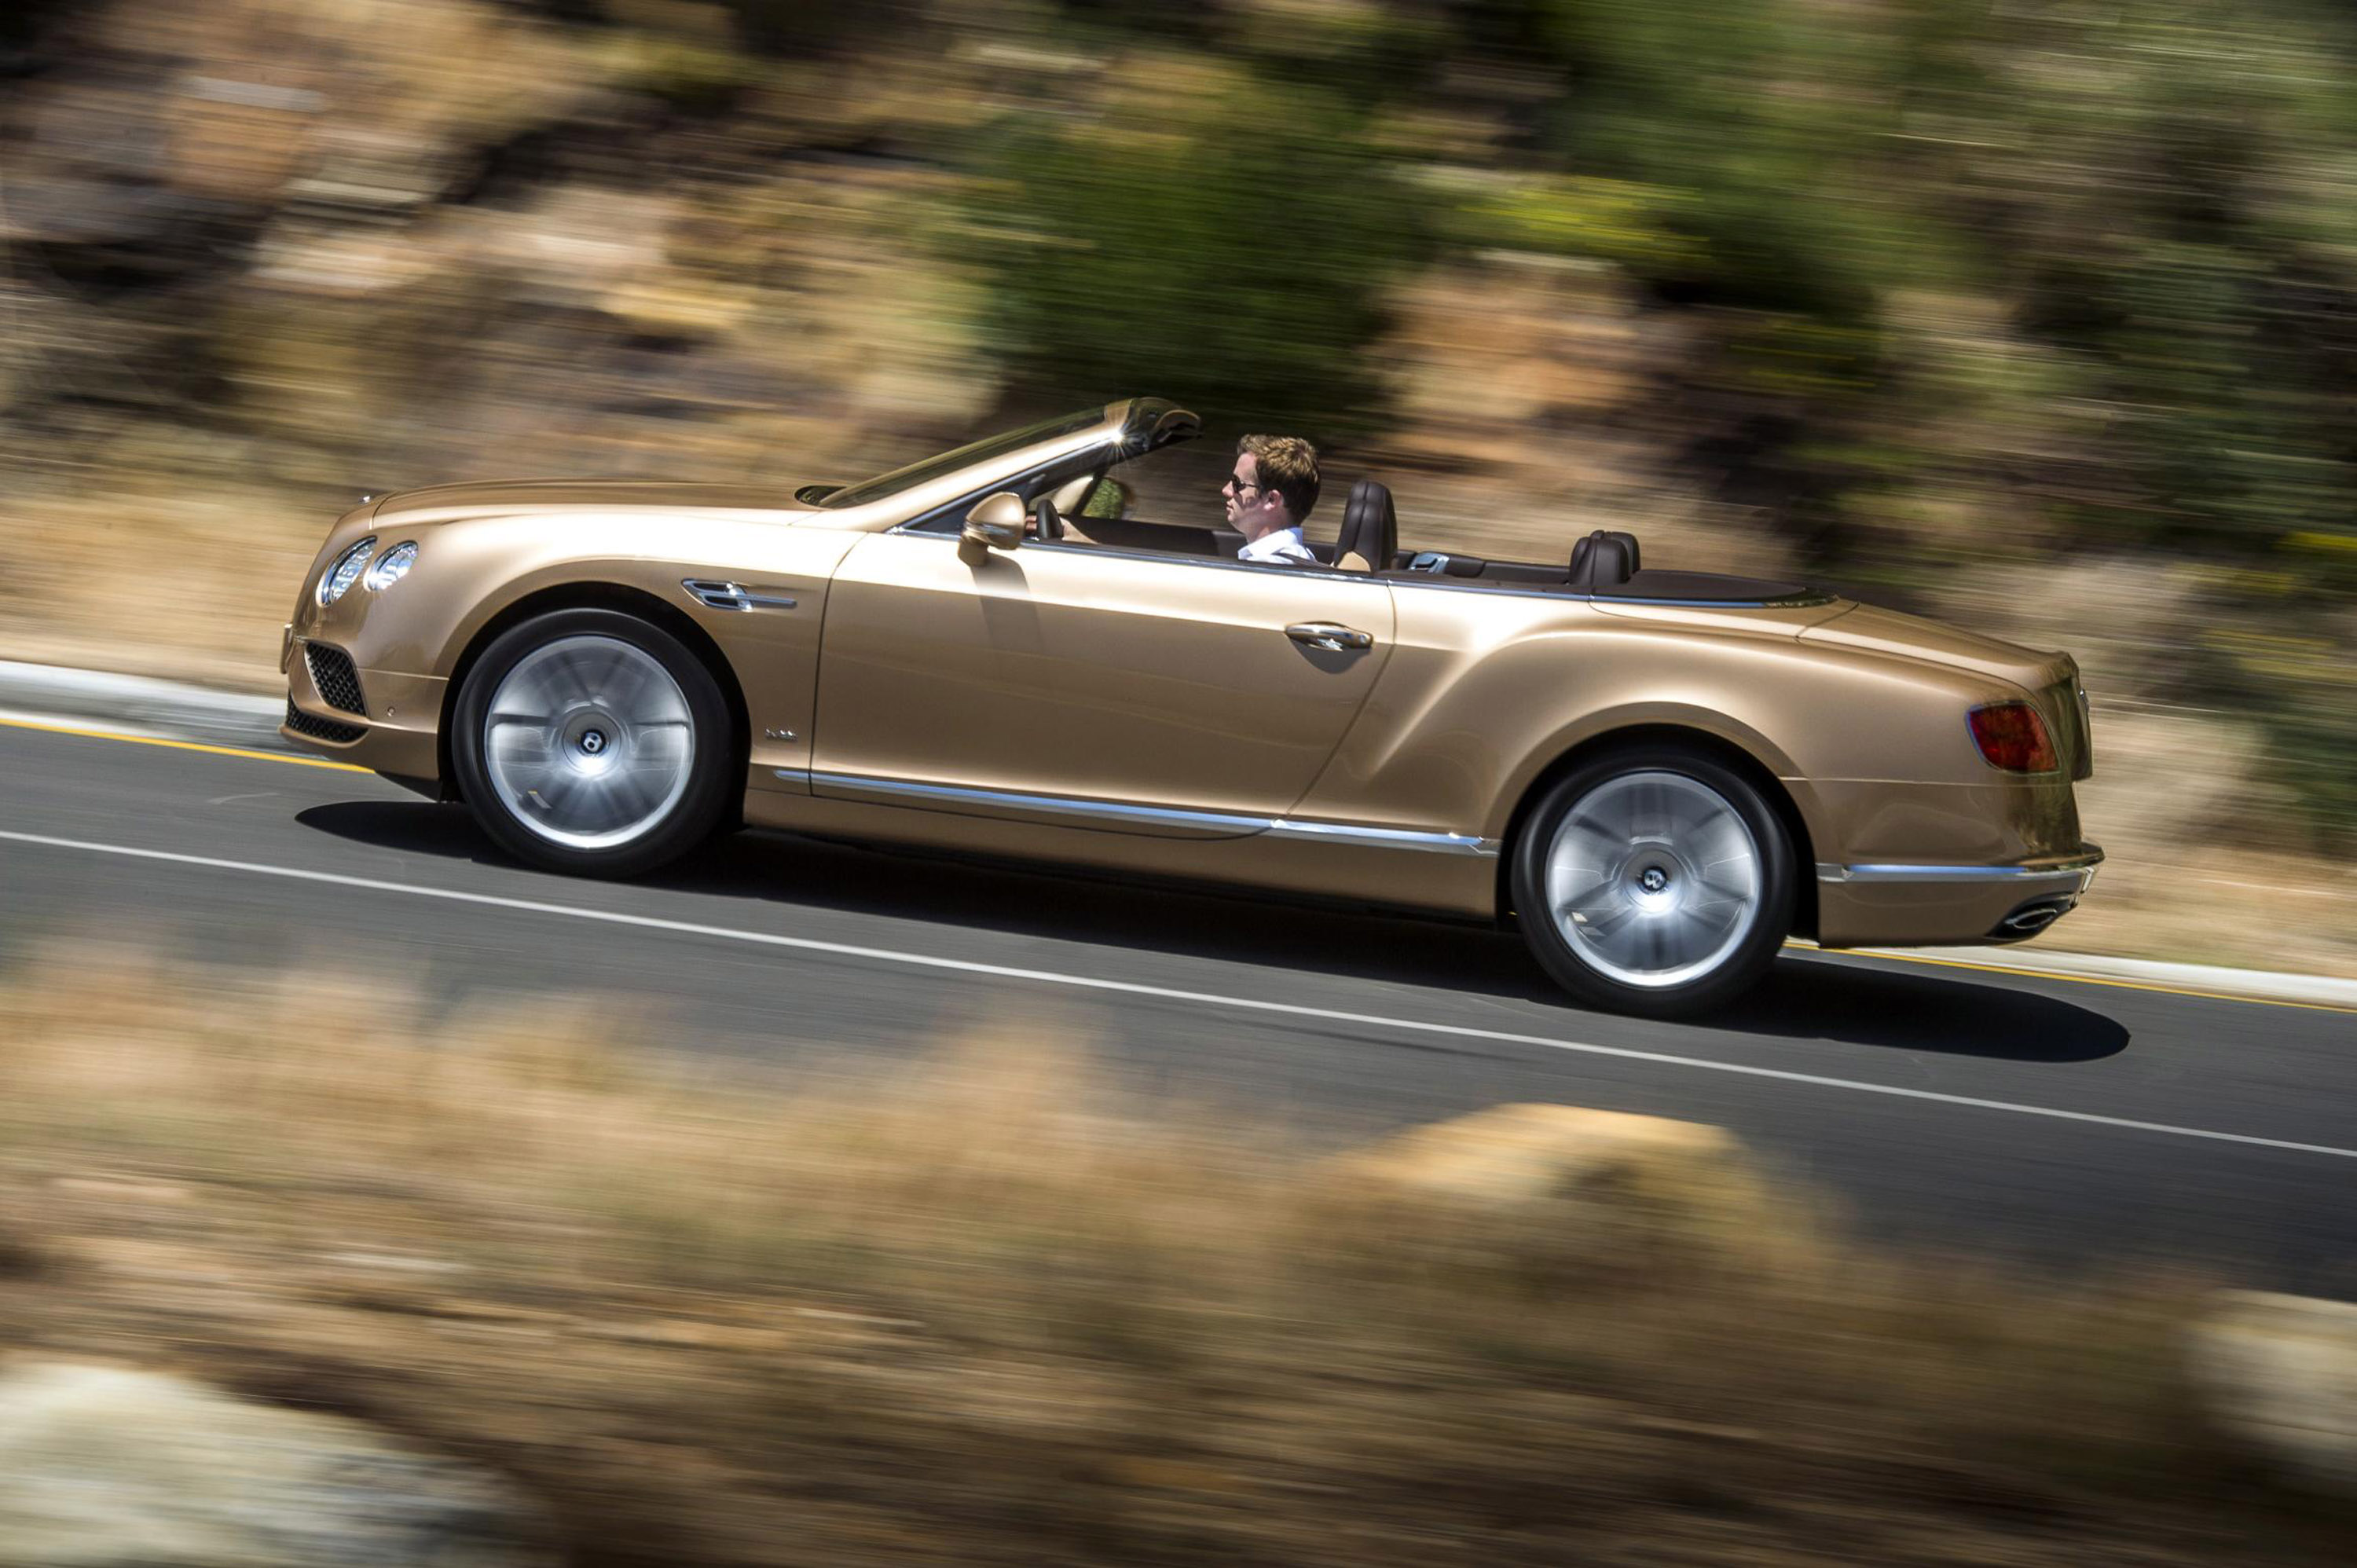 speed bentley a does much gtc cars cost continental convertible top how bentely